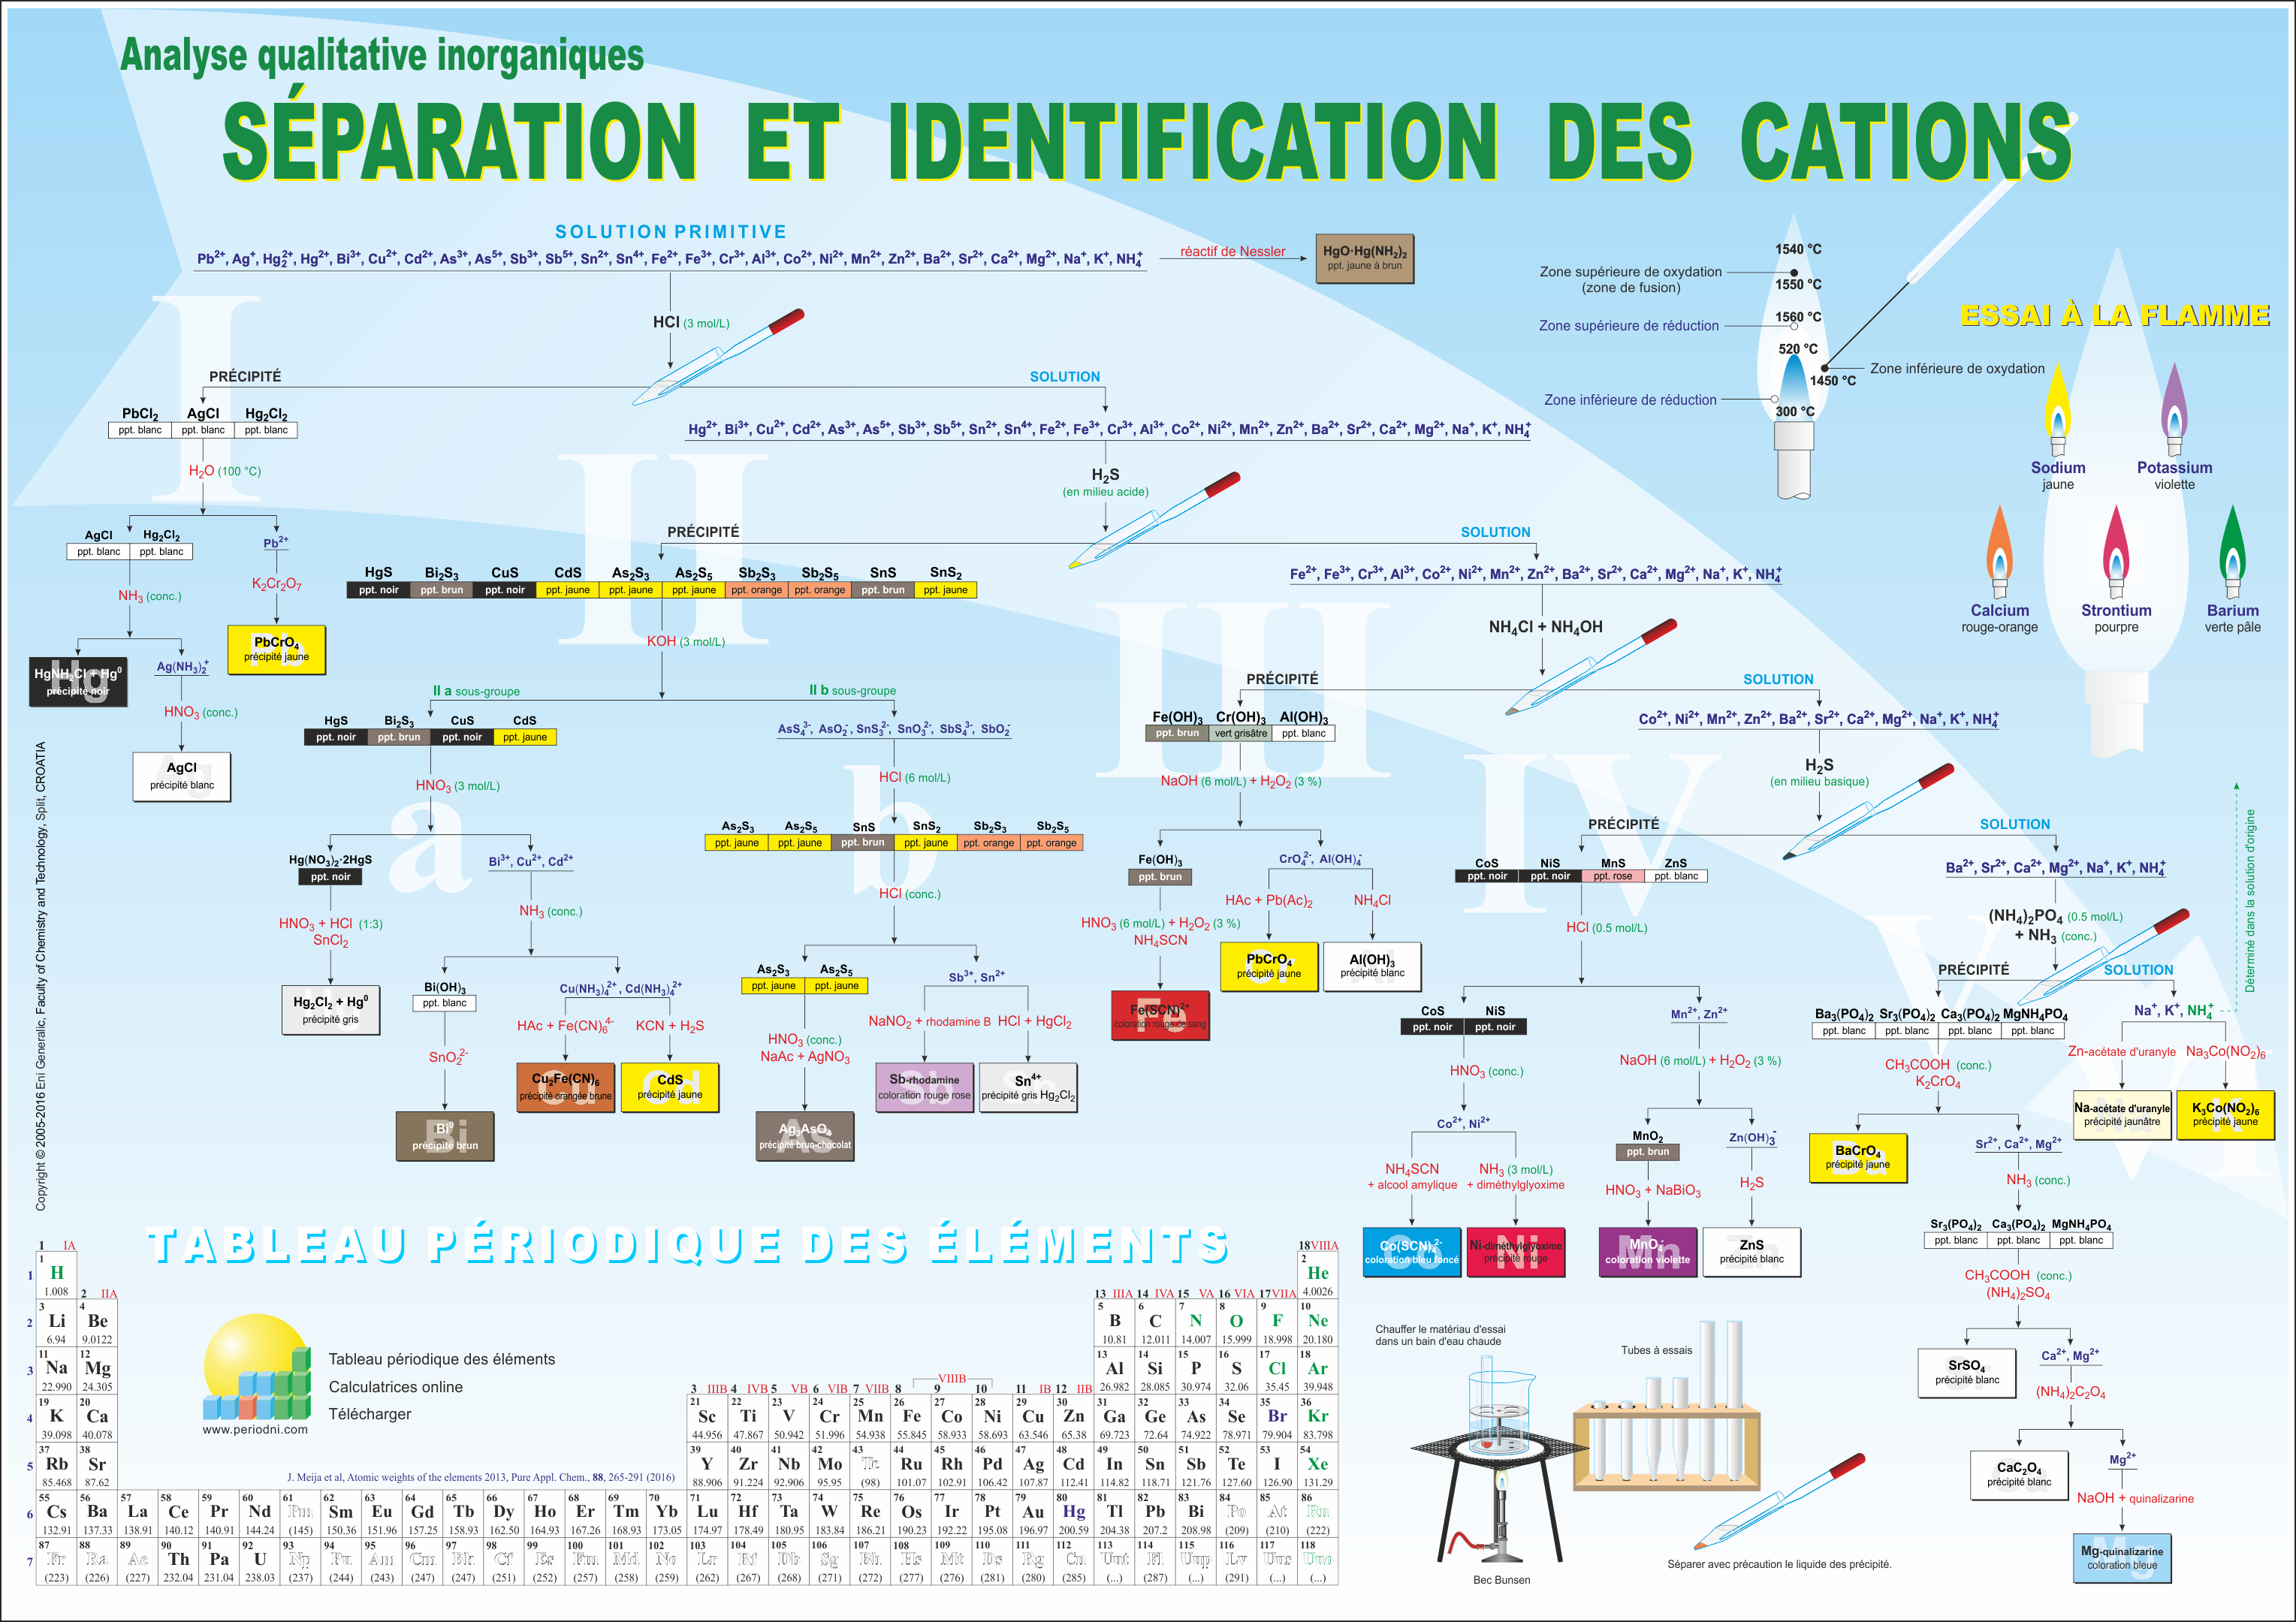 Direct download link: https://www.periodni.com/gallery/separation_et_identification_des_cations.png